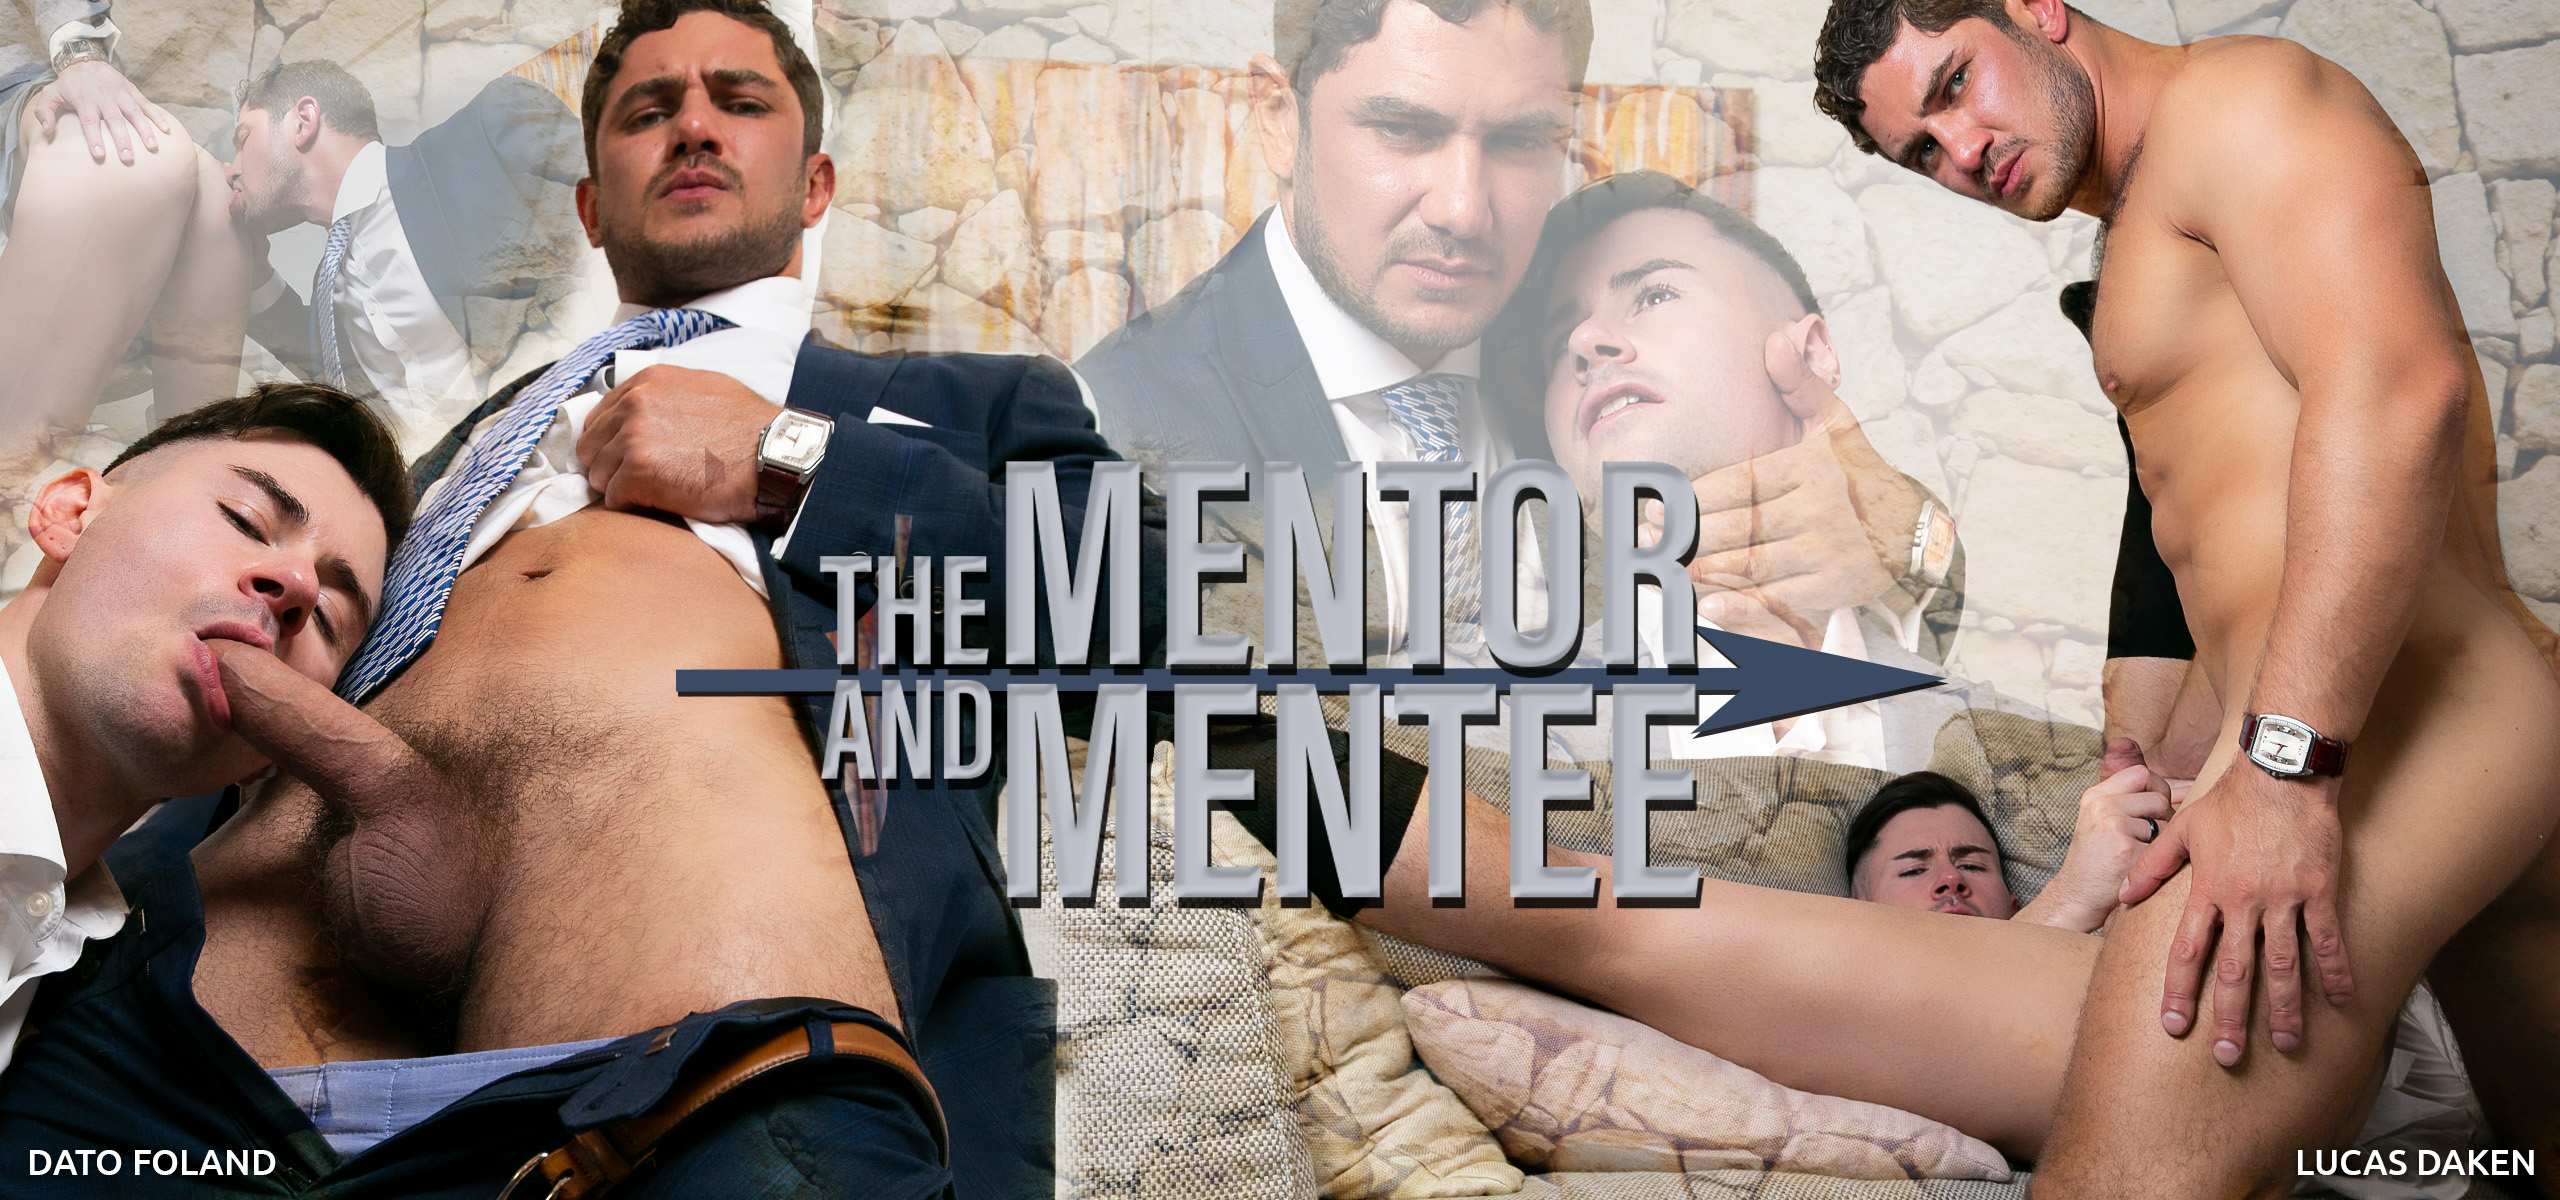 Men at Play The Mentor and Mentee Starring Dato Foland and Lukas Daken